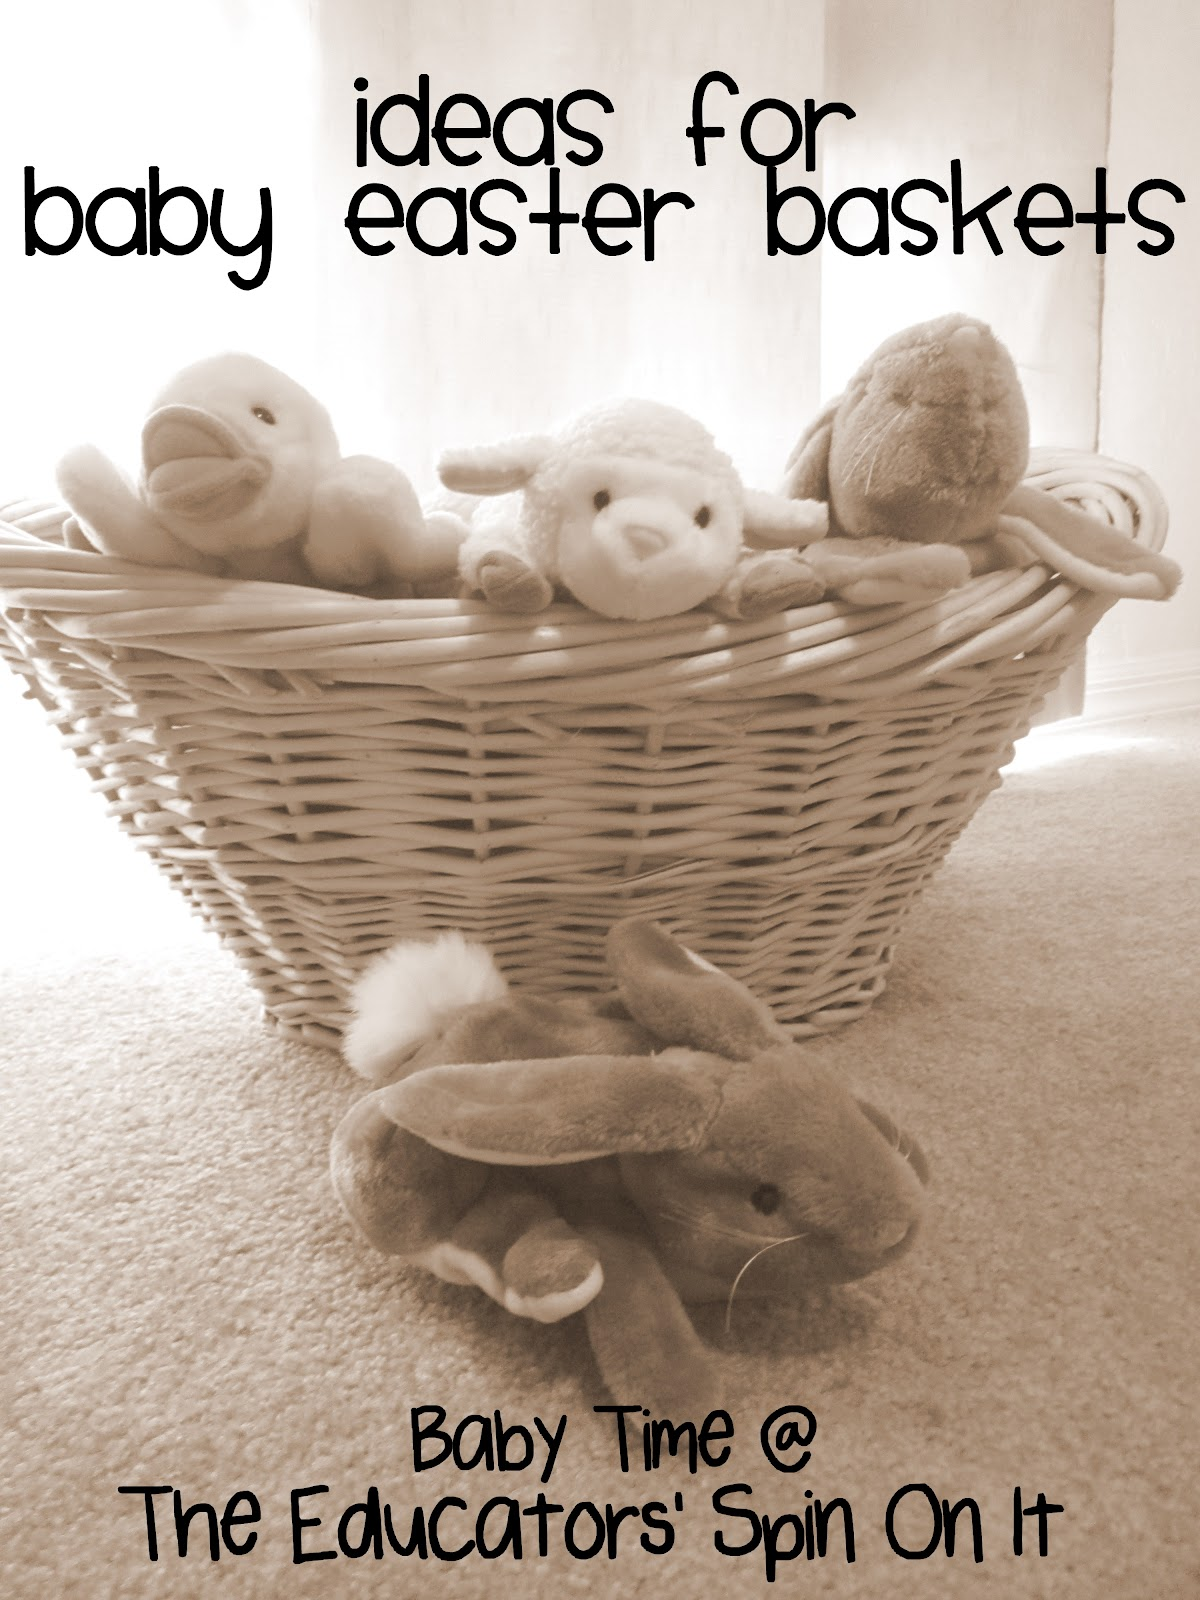 Ideas for easter baskets for babies ideas for easter baskets for babies and toddlers from the educators spin on it negle Choice Image